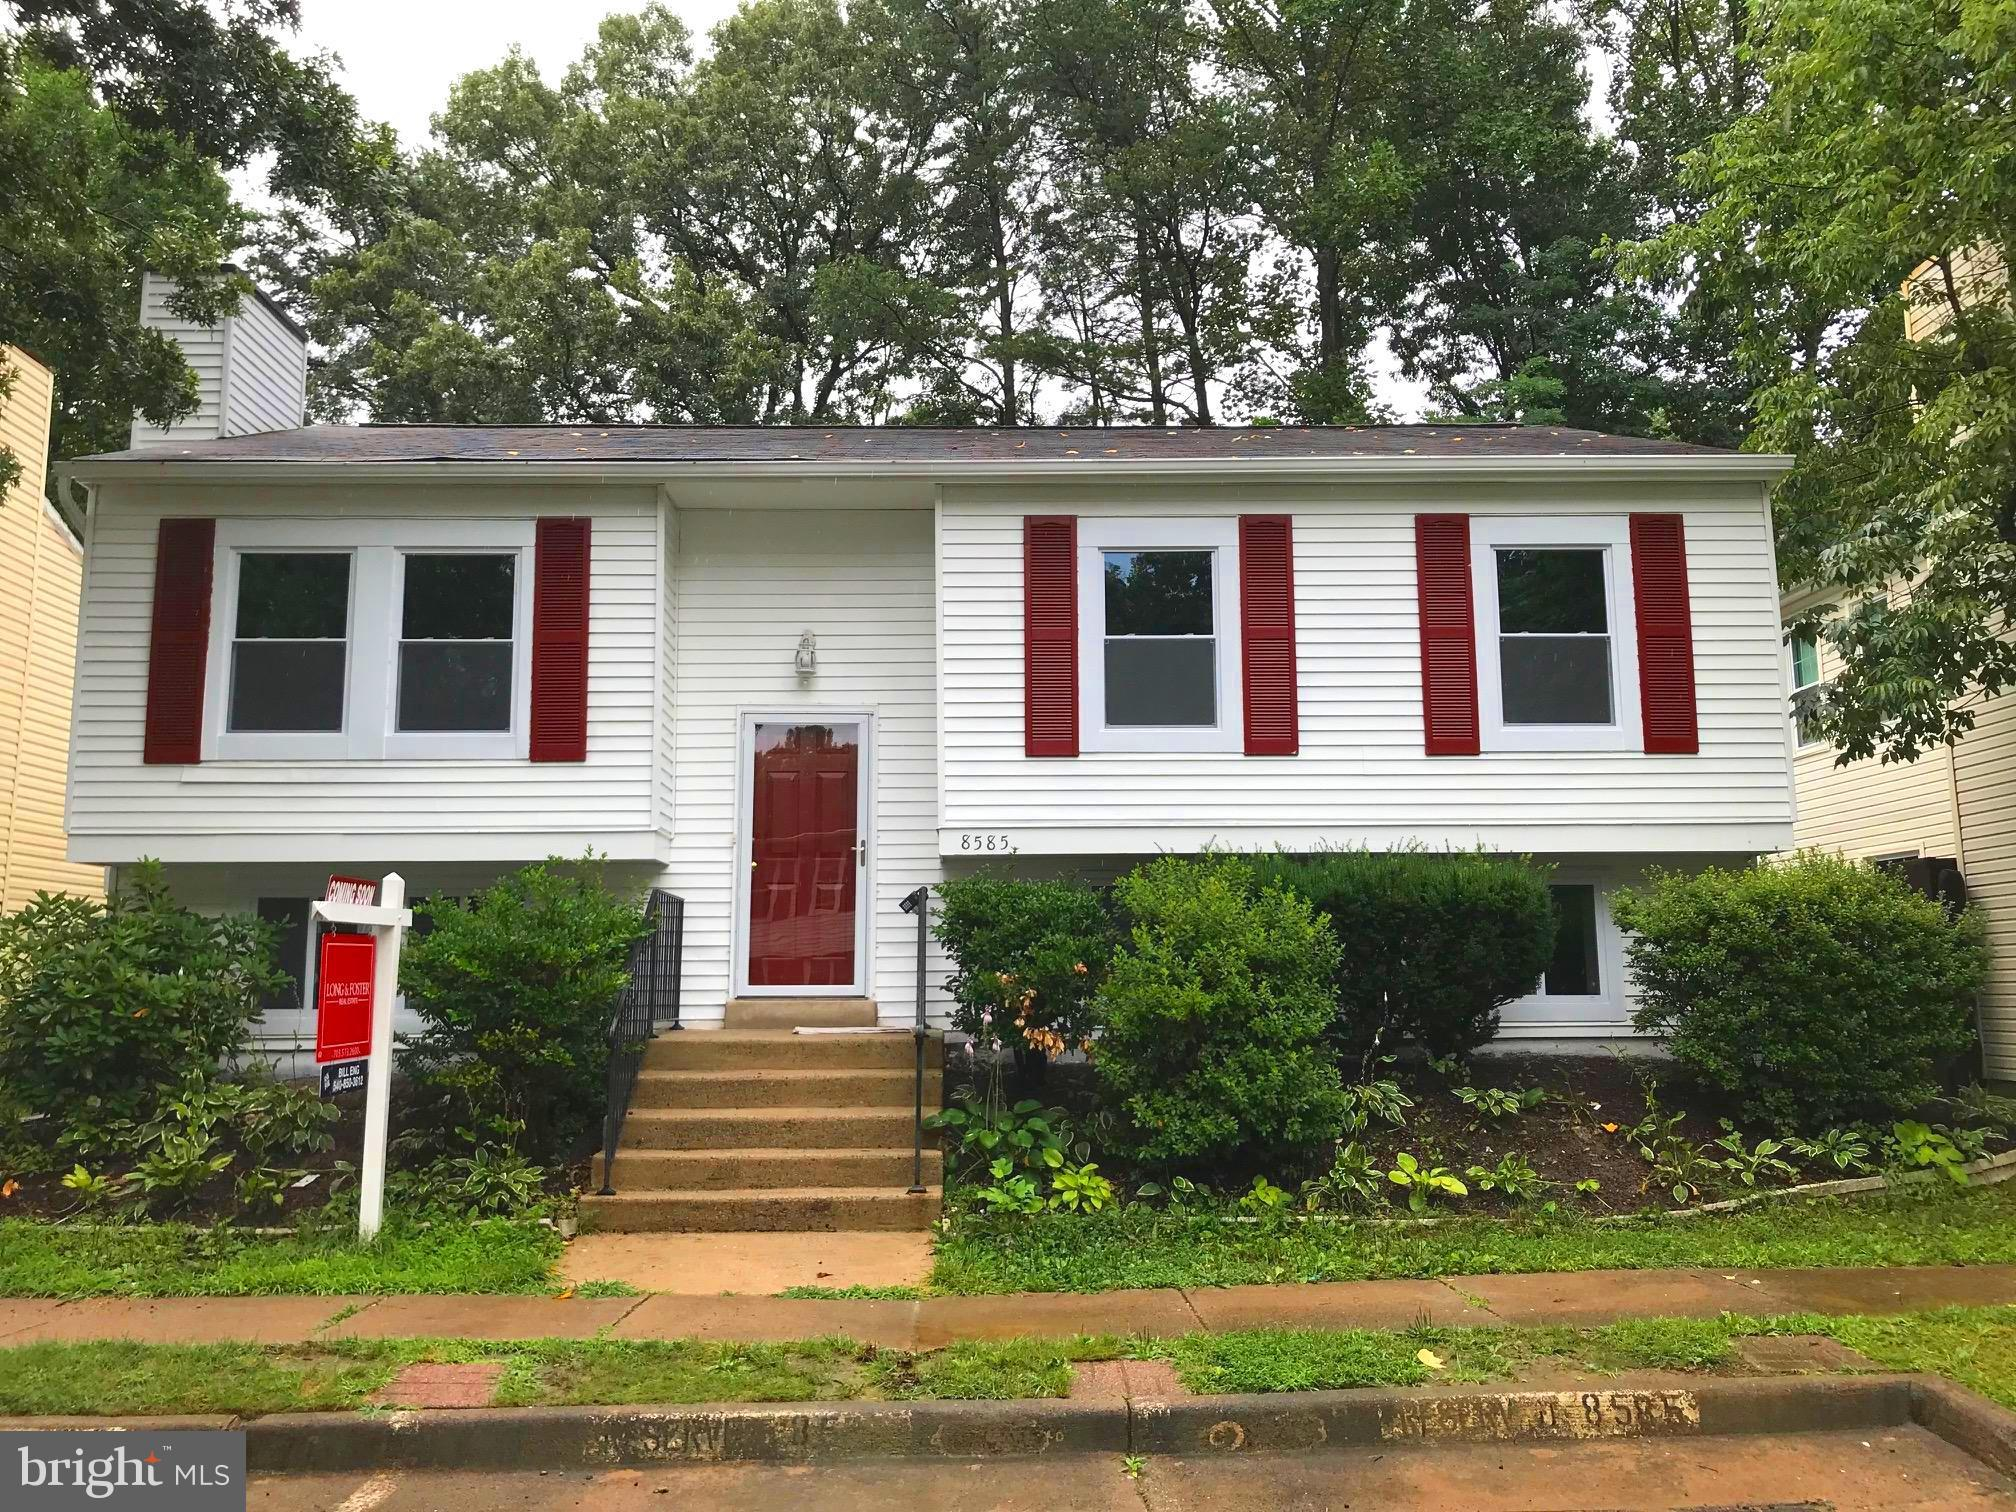 NEW PRICE!! West Springfield Single Family home, minutes from FFX pkwy, Commuter lot, METRO & VRE. Completely remodeled: new kitchen & baths, new appliances (W&D:as-is) Main Level:3 bedrooms & full bath.  Lower Level: huge bedroom, large family rm, full bath, Laundry/Utility Rm. All new flooring (carpet/ceramic tile), new windows, lighting, paint. Everything's done.  Just move in. Great schools.